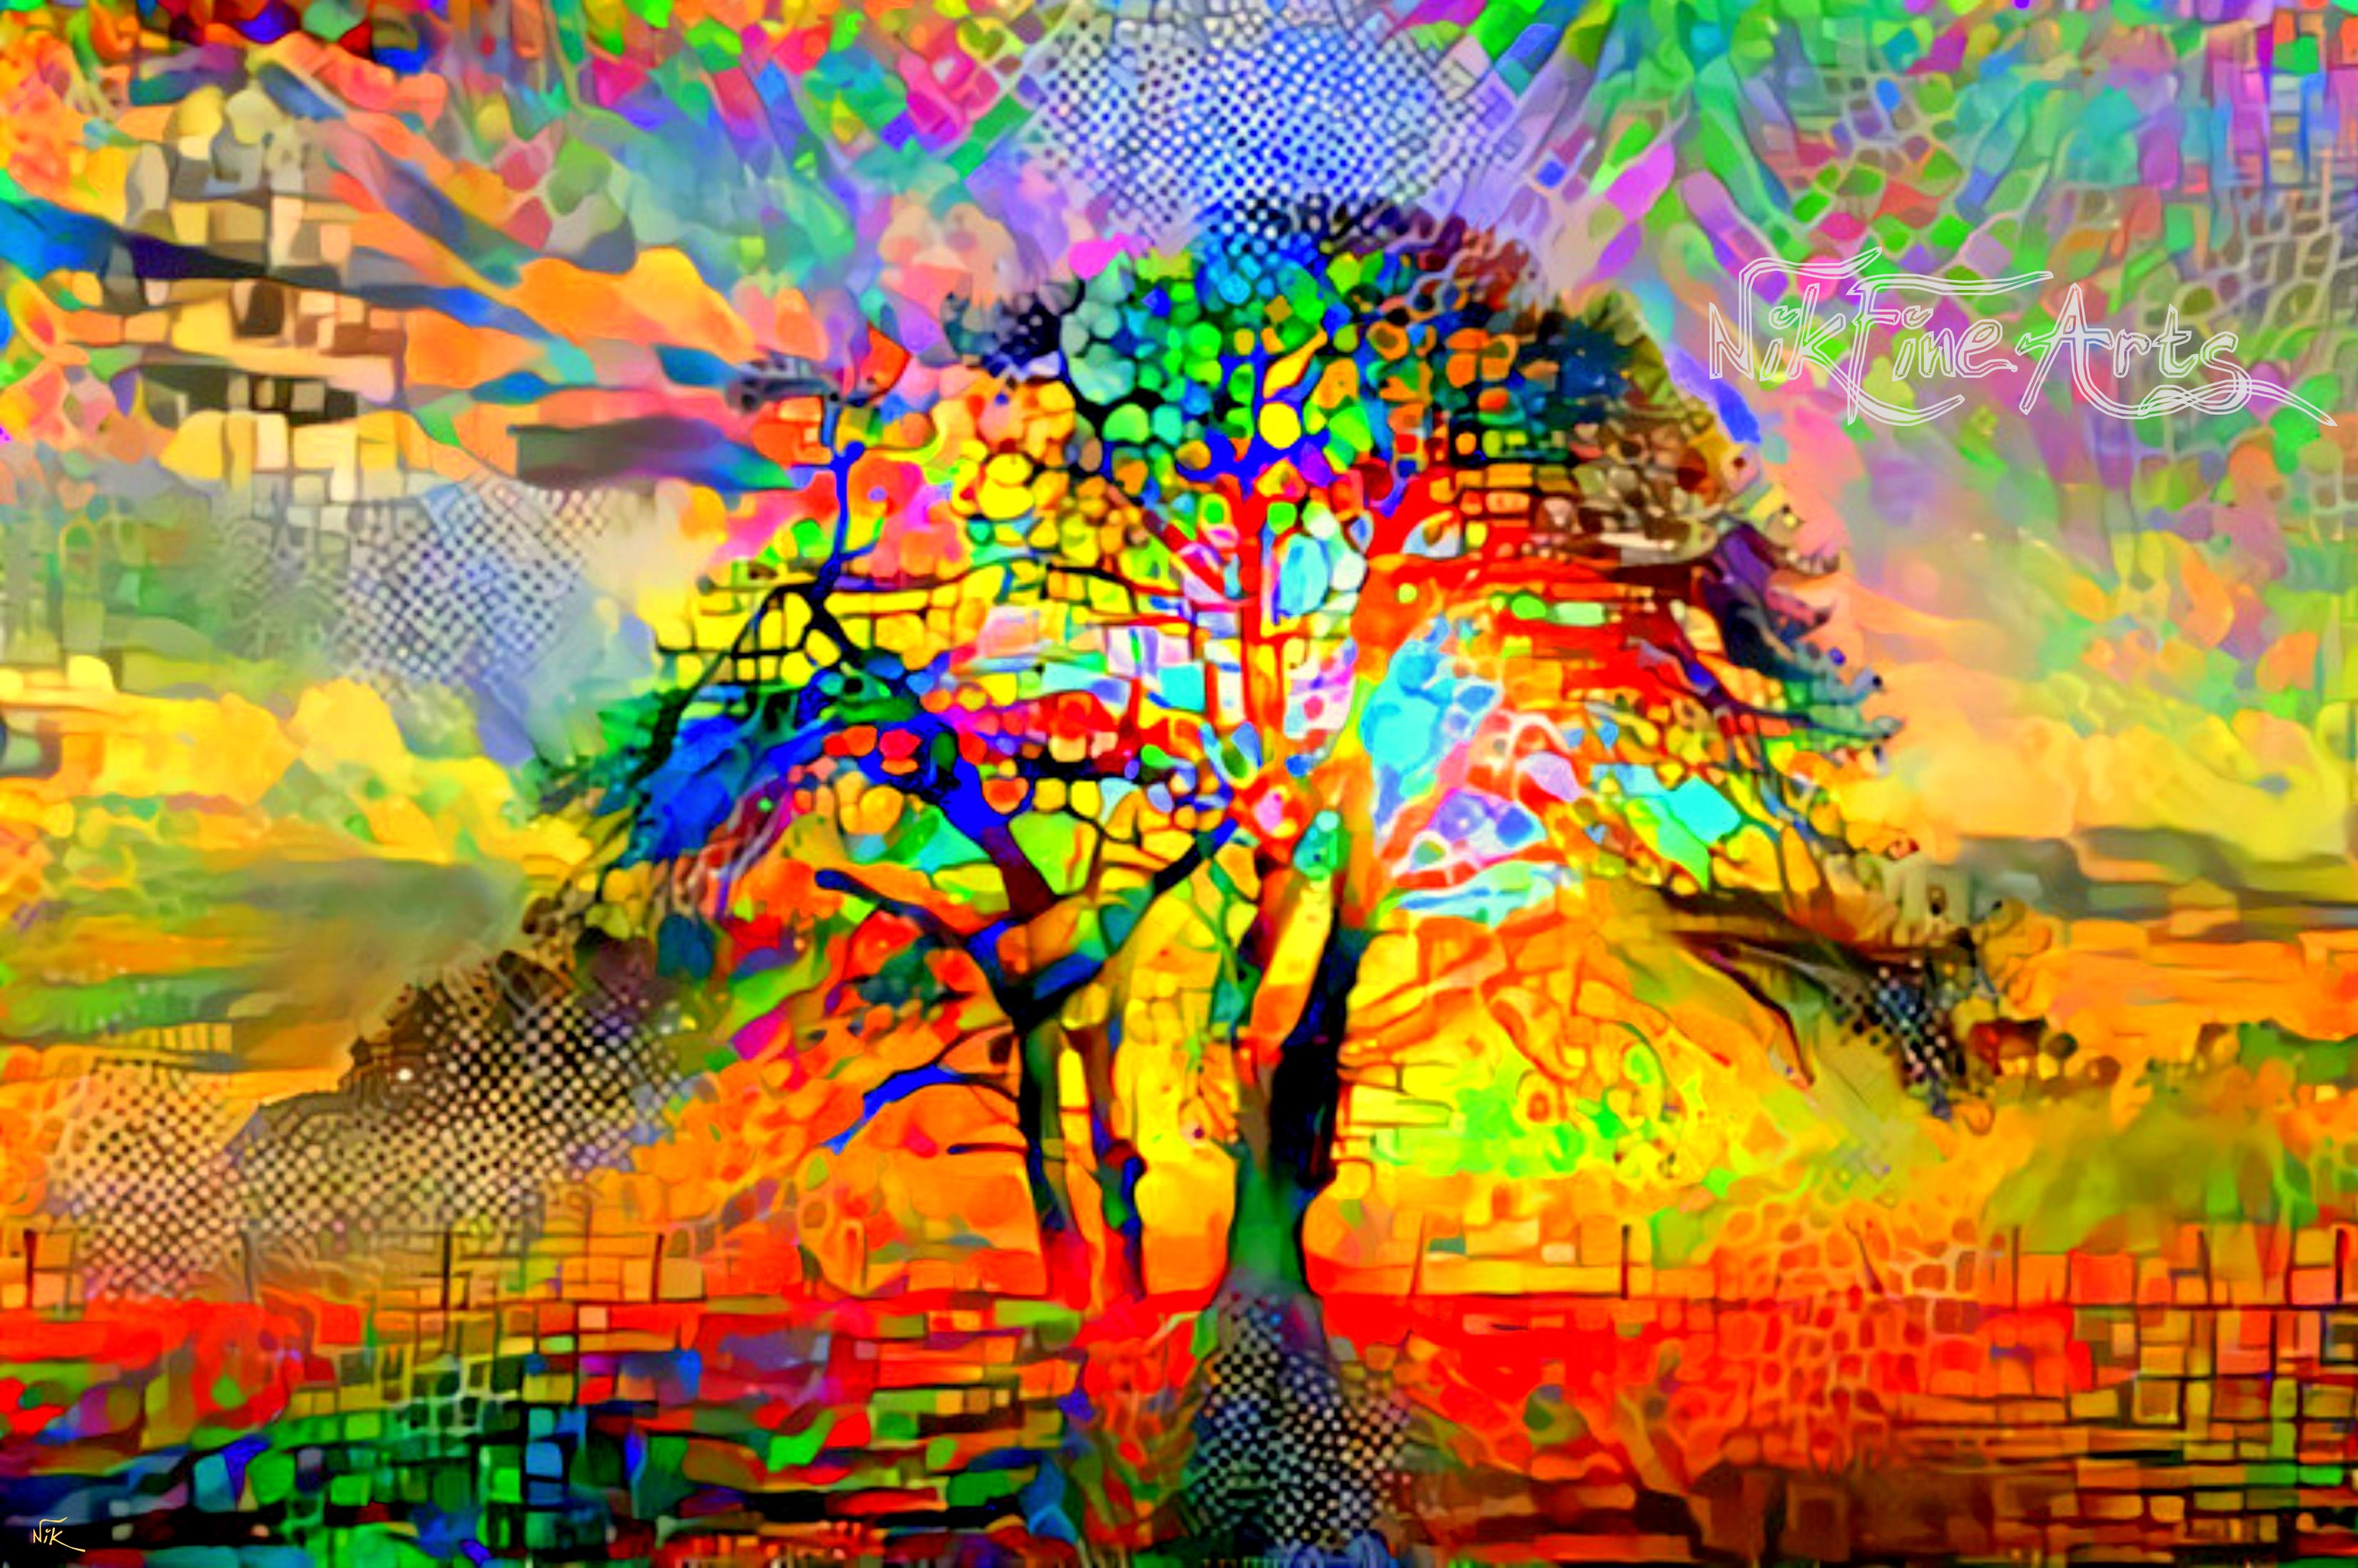 COLORFUL ABSTRACT TREE - Nik Fine Arts - Original ...